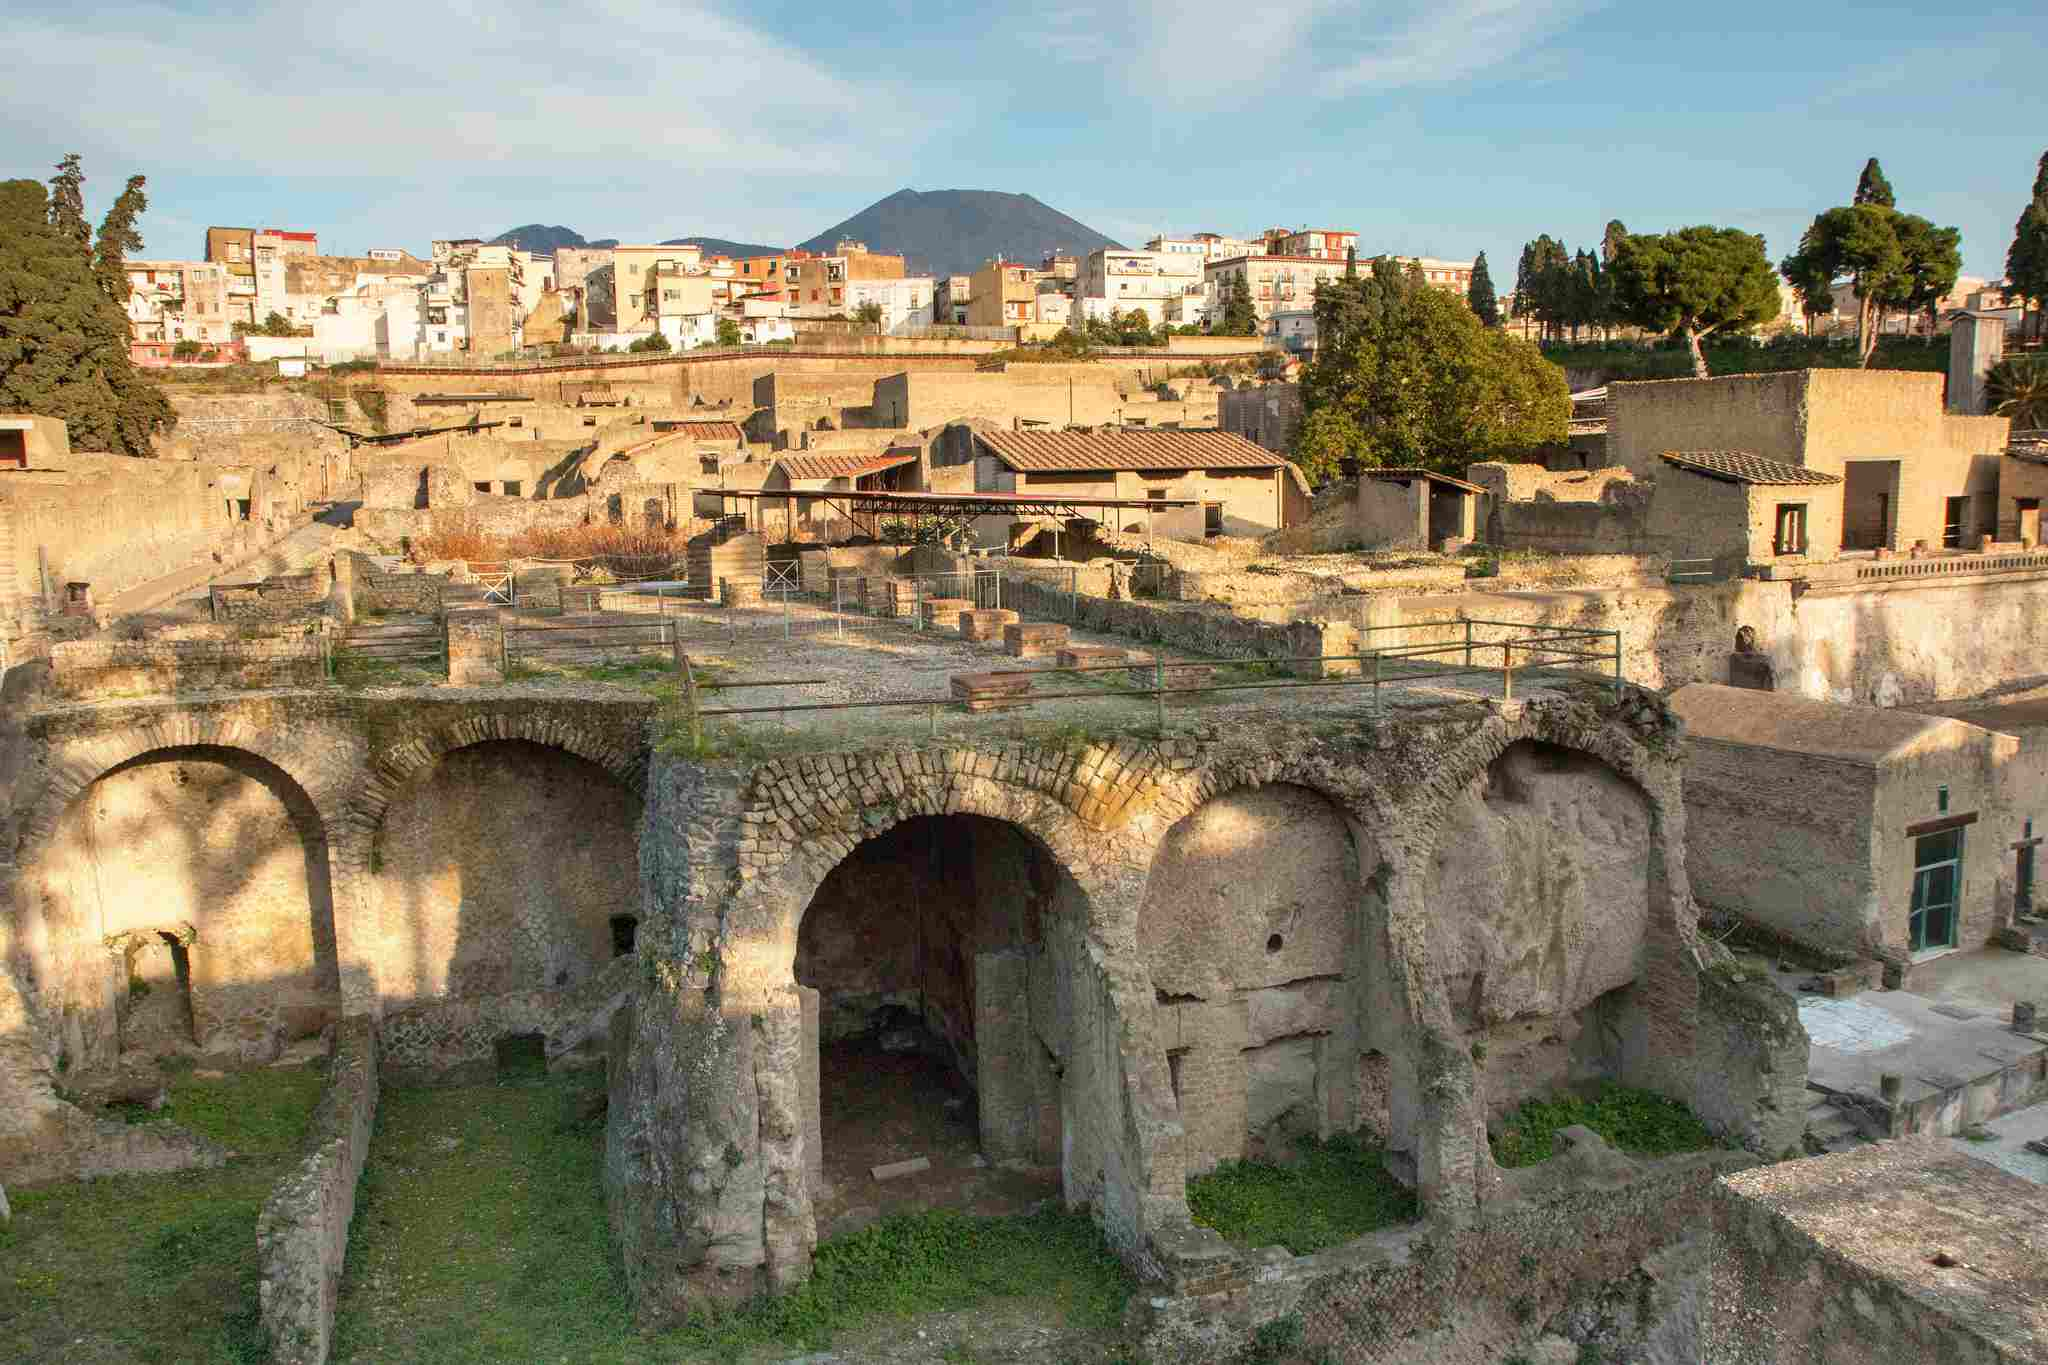 Herculaneum, Italy, in the afternoon sunlight.